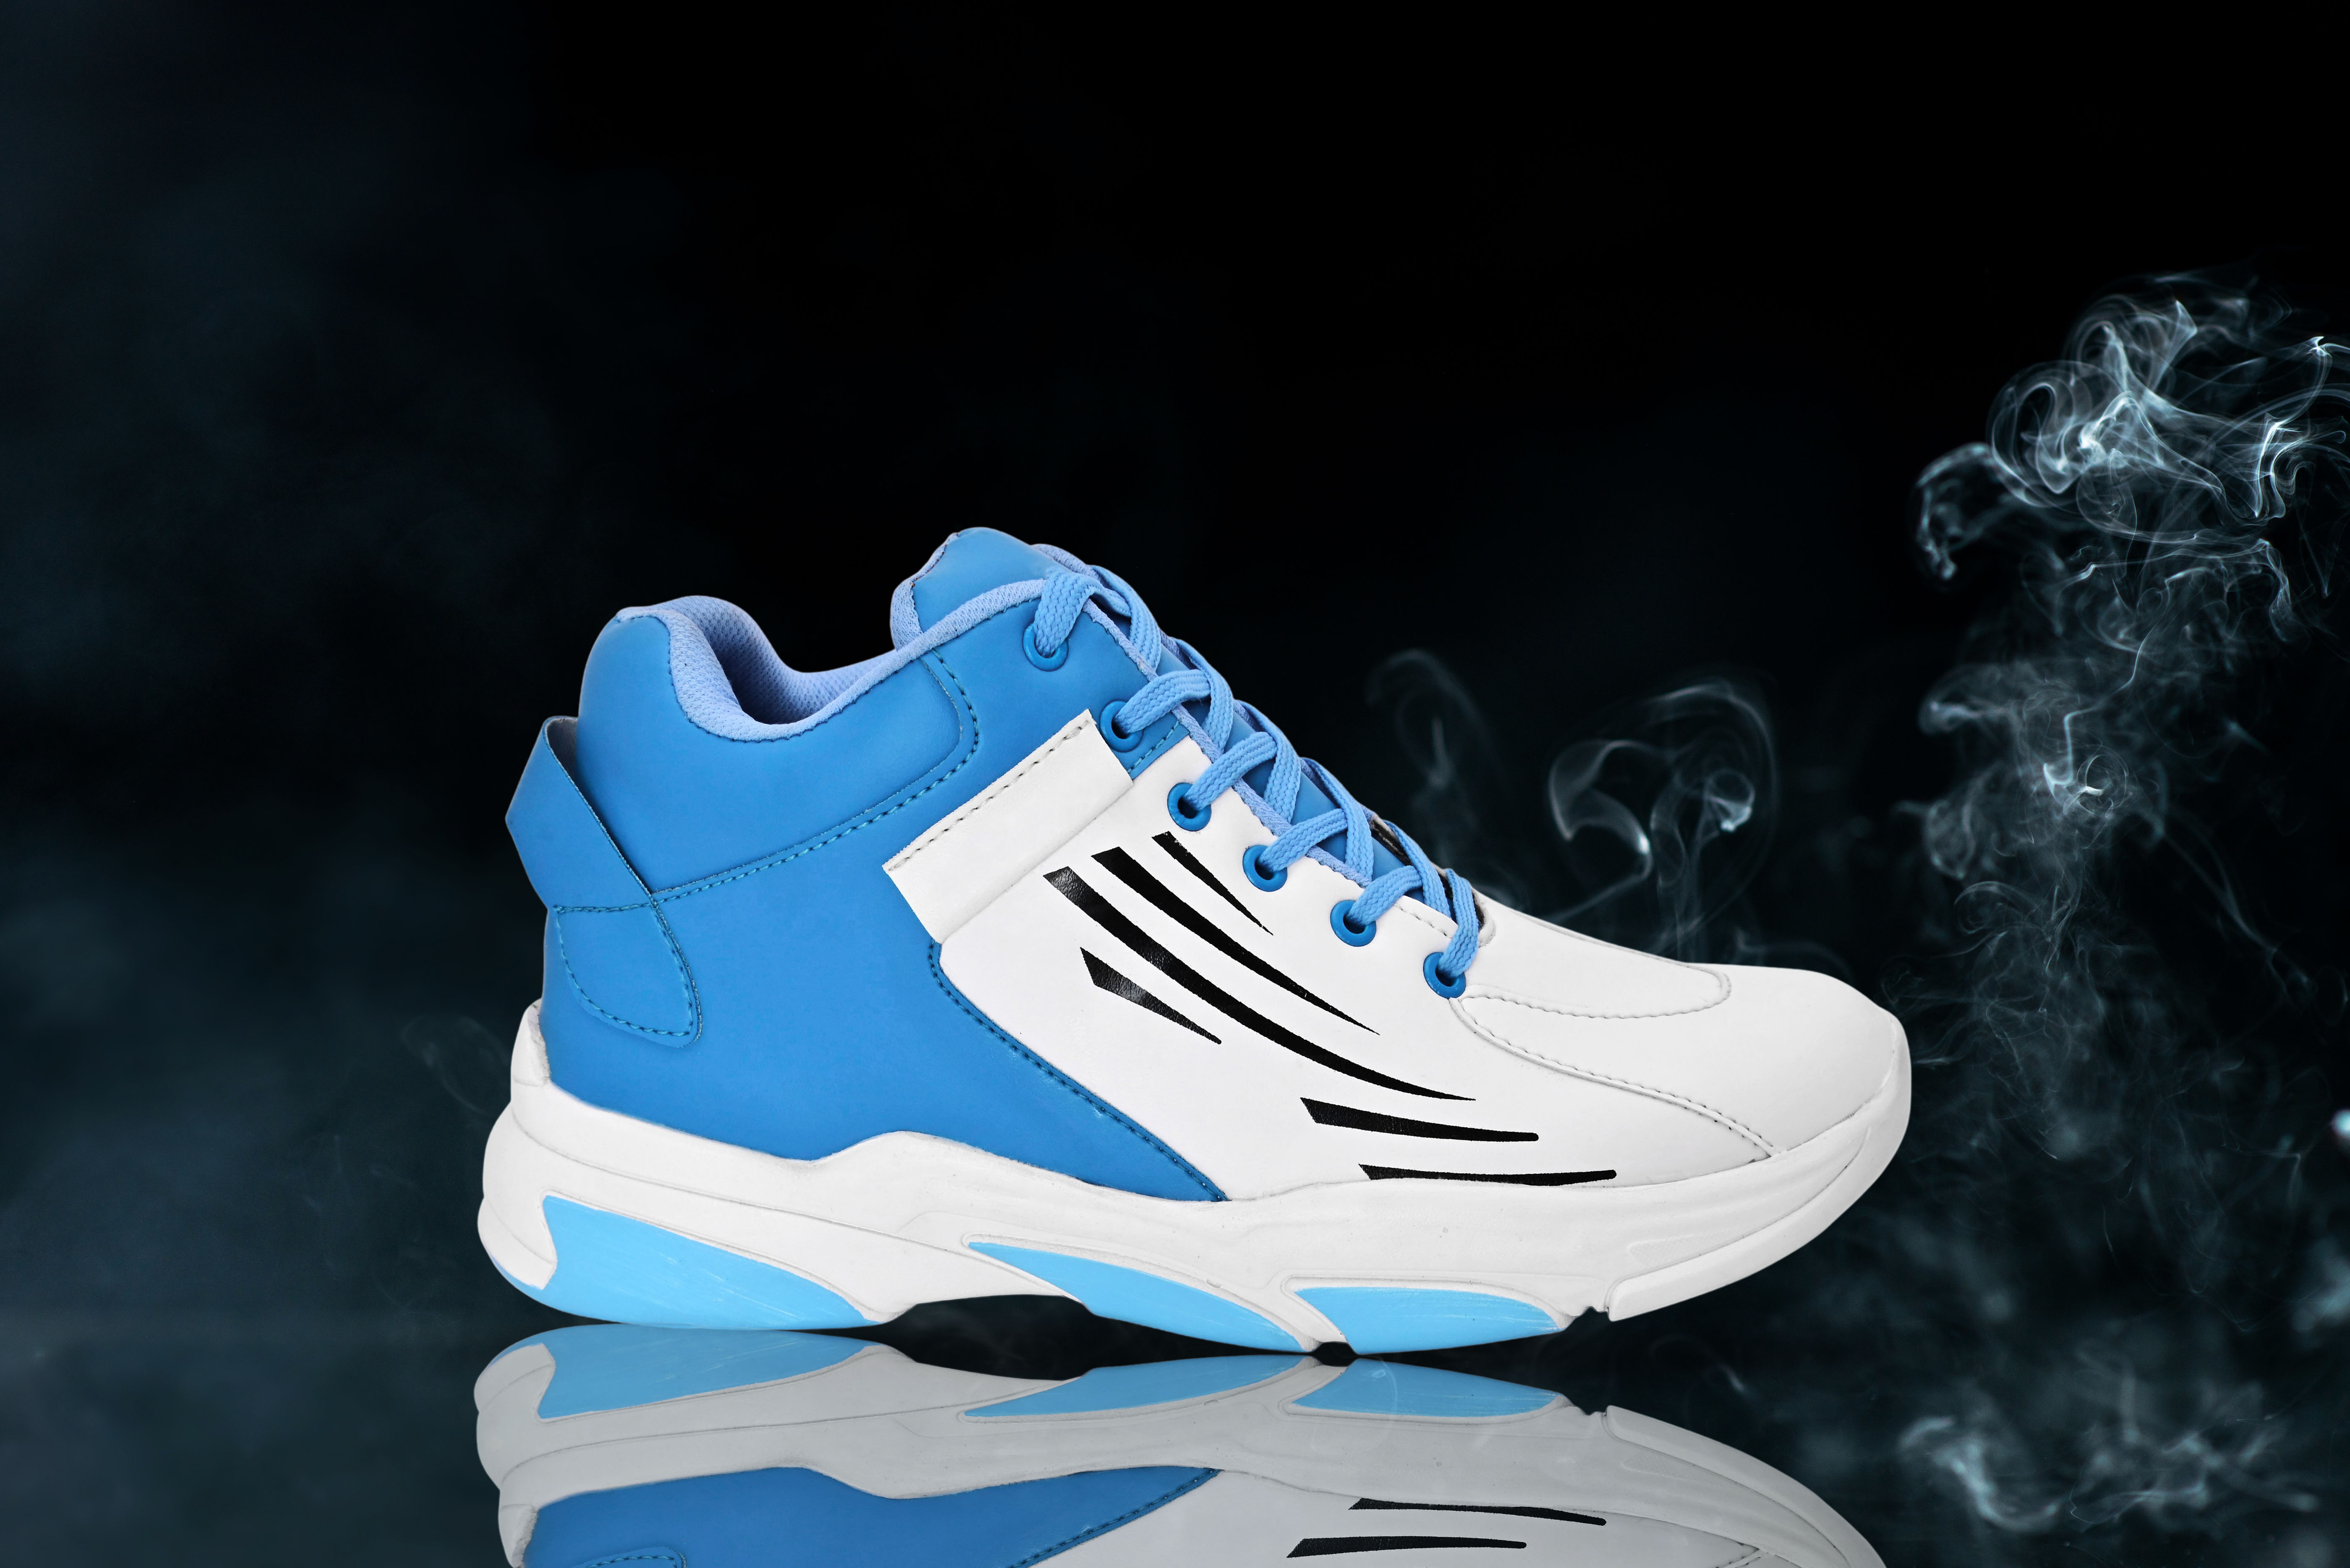 BRIFAR COMFORTABLE & TRENDY SPORTS SHOES ARE RELIABLE FOR ANY BFS0797BLU1 (7-10, BLUE, 4 PAIR)